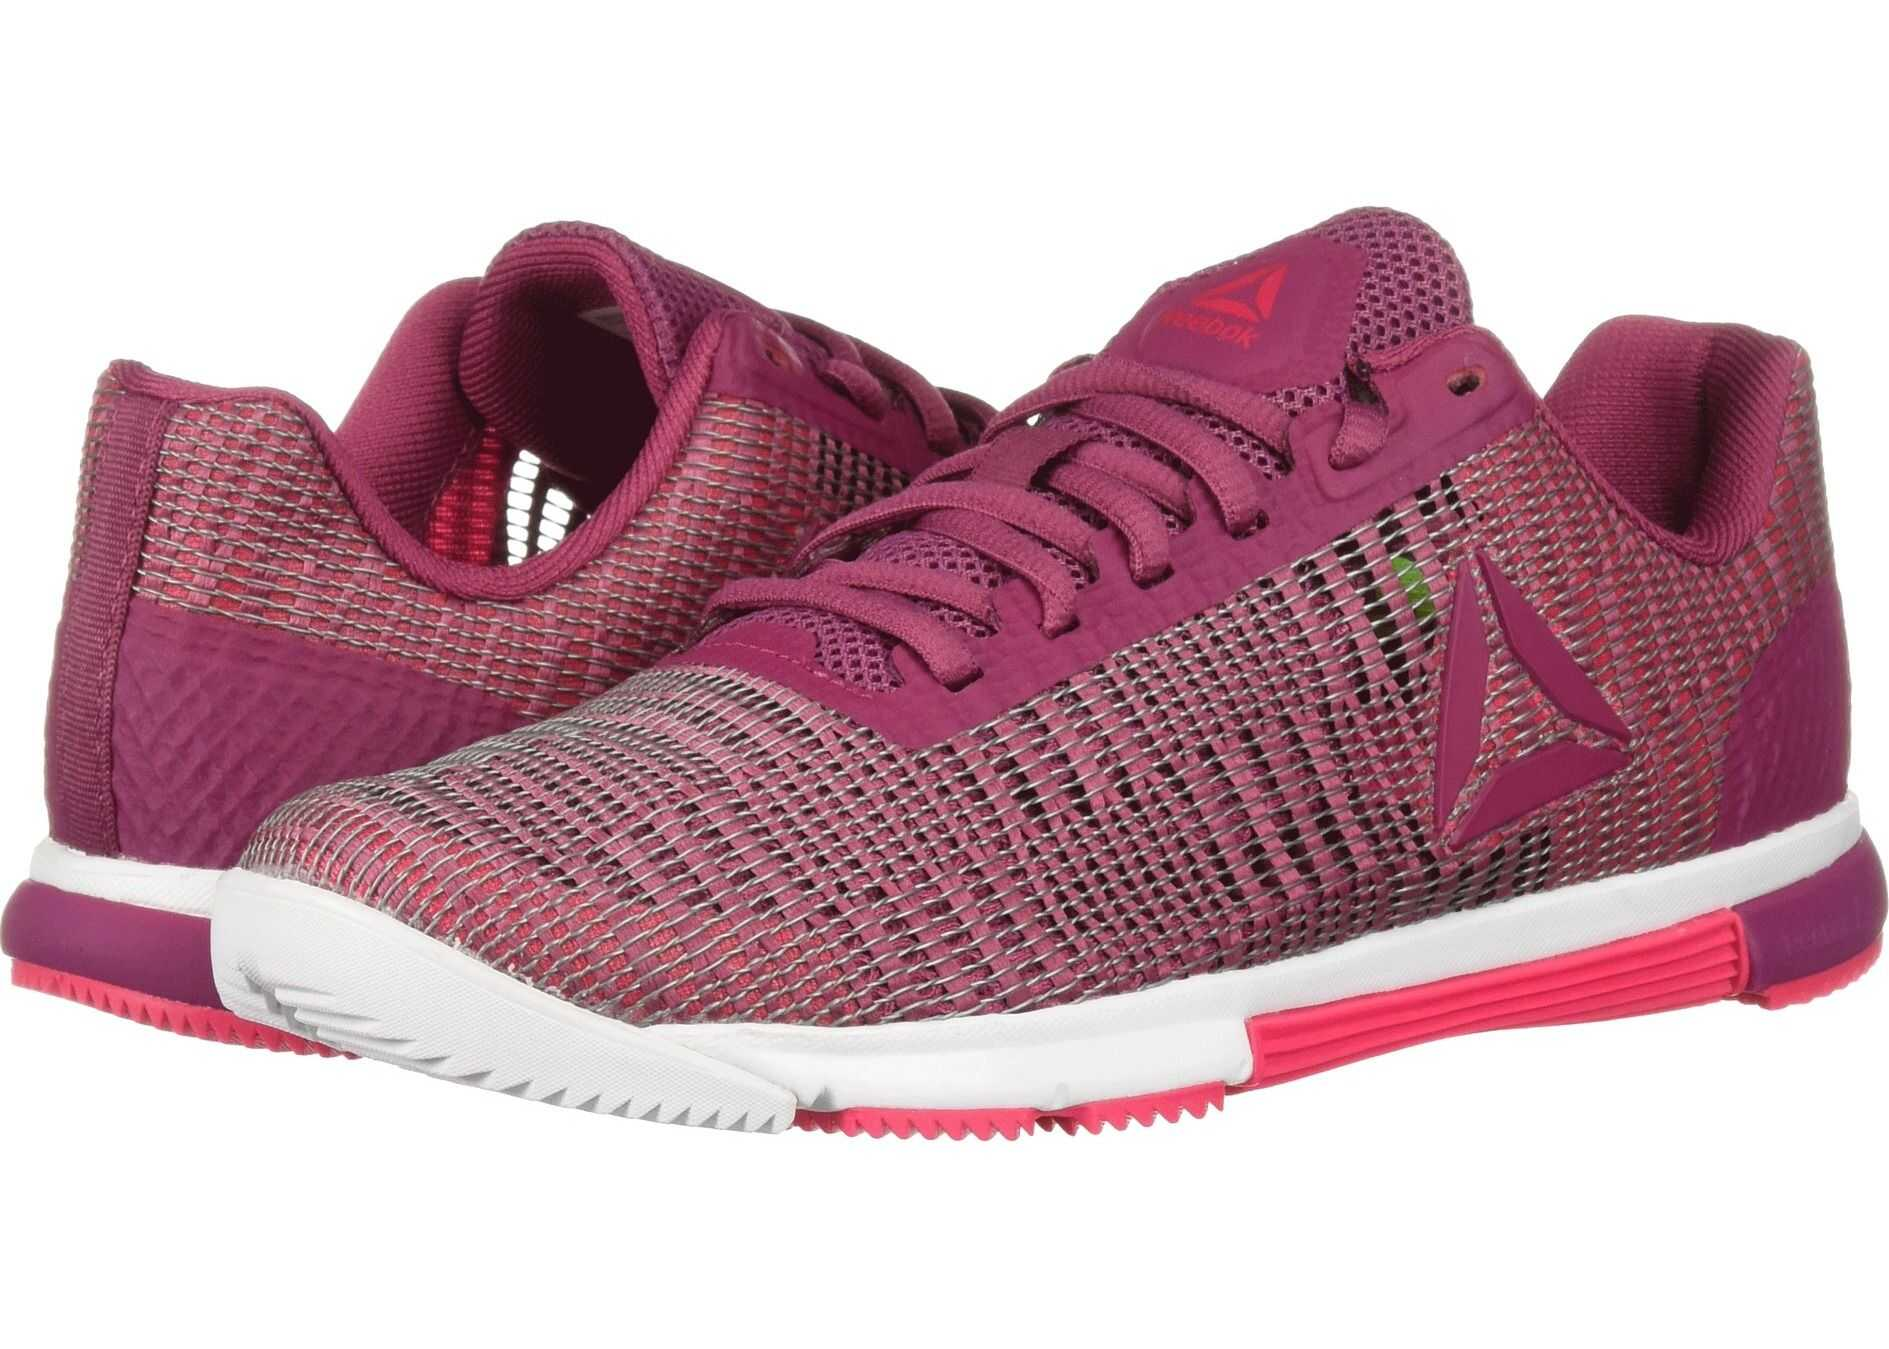 Reebok Speed TR Flexweave Twisted Berry/Twisted Pink/White